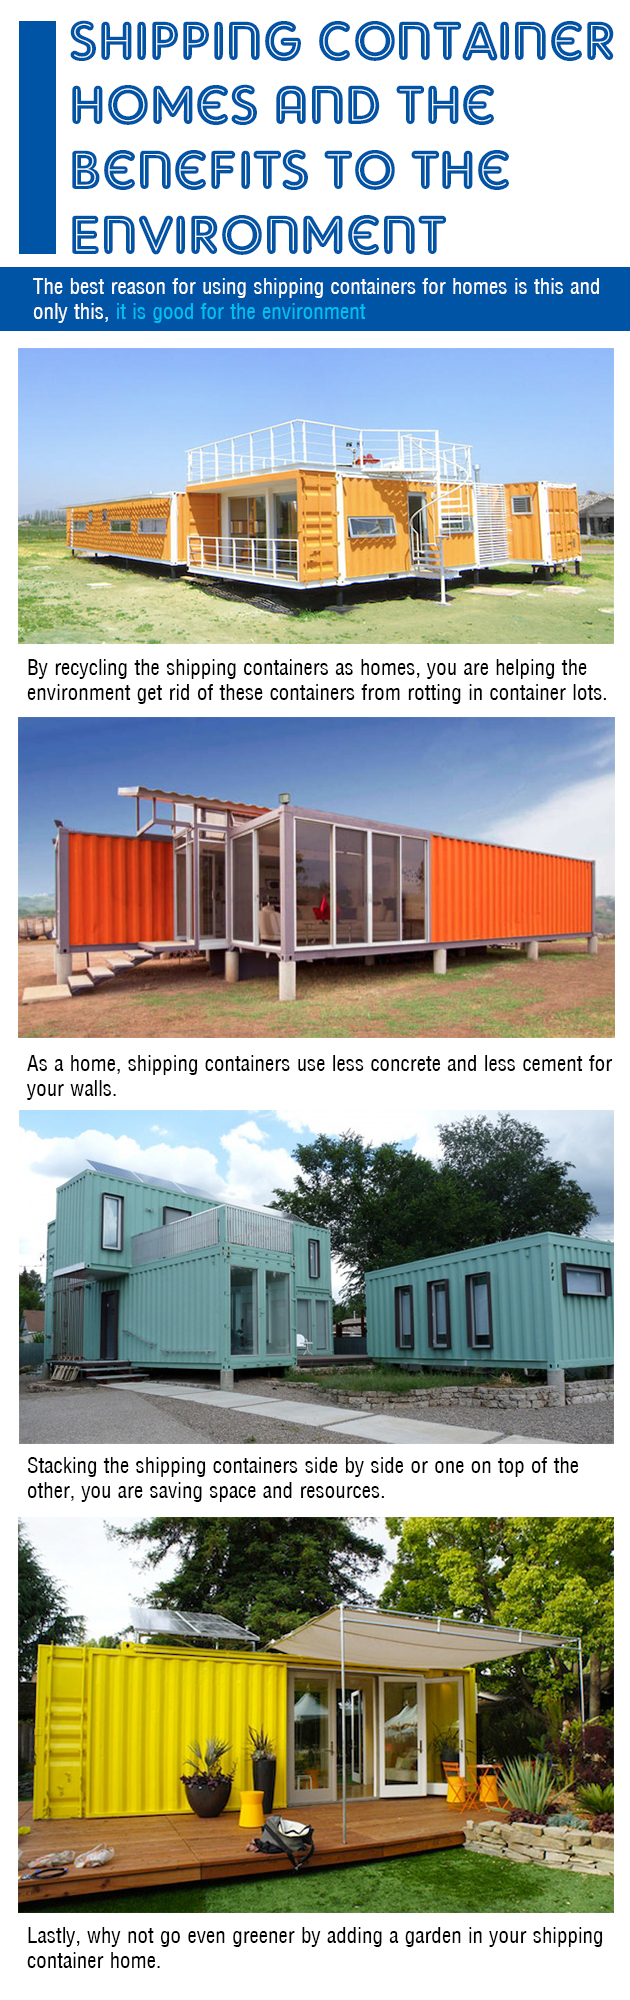 Shipping Container Homes Benefits to Environment